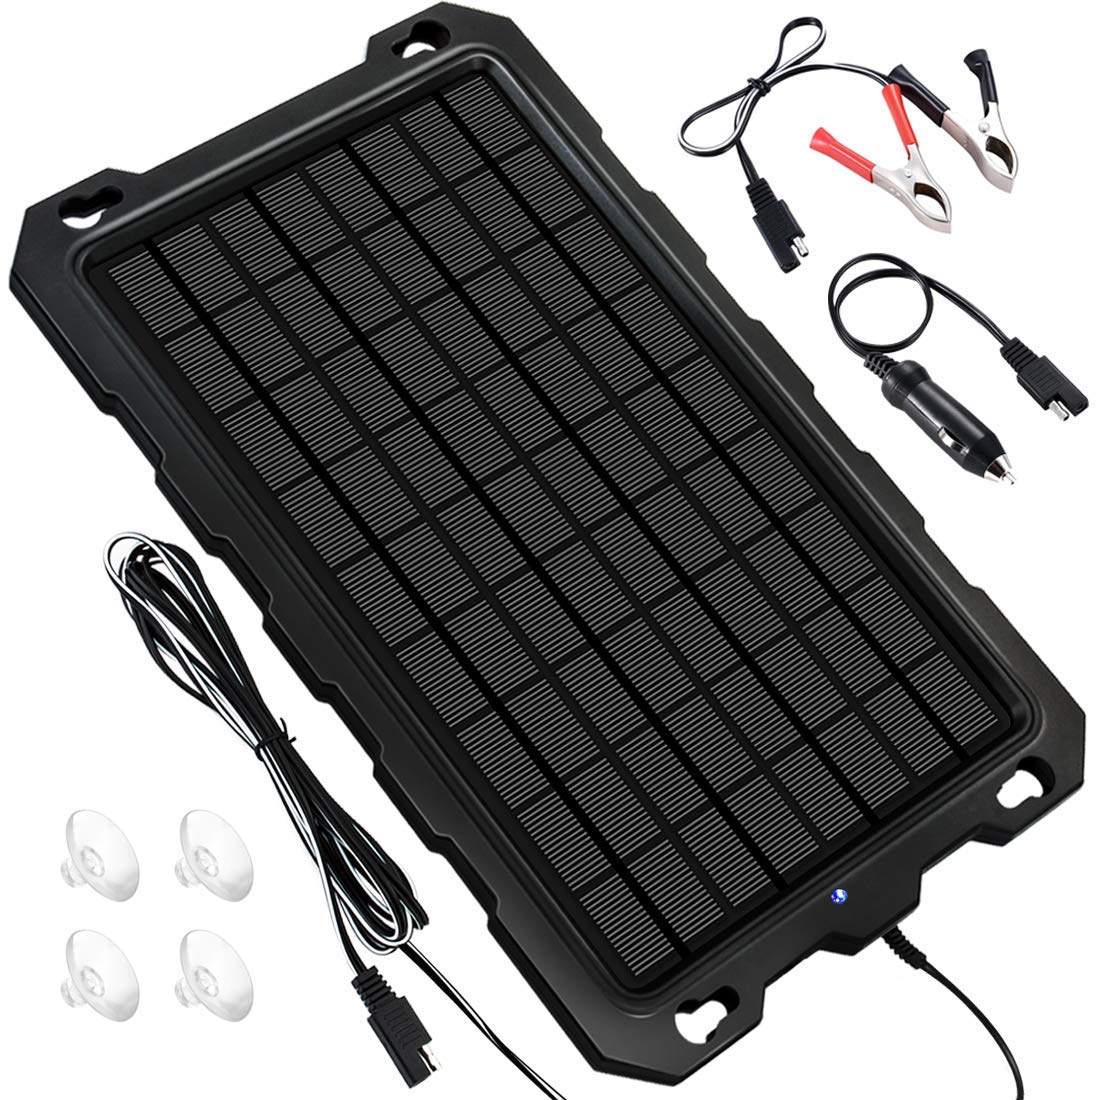 Solar Battery Charger Car, 7.5W 12V Solar Trickle Charger for Car Battery, Portable and Waterproof Solar Battery Maintainer, High conversion single crystal silicon Solar Panel car battery charger